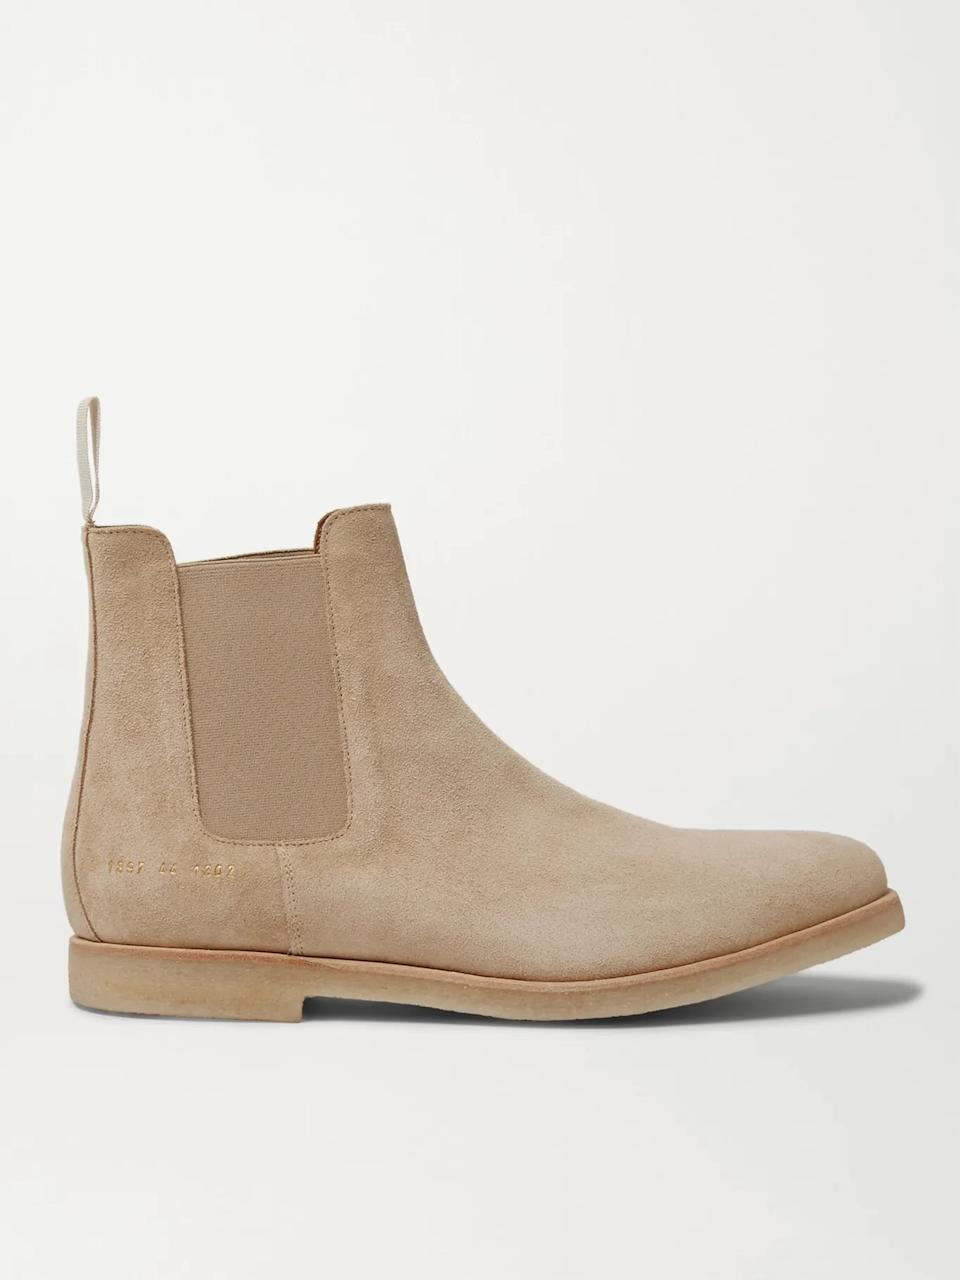 Common Projects Suede Chelsea Boots. Image via Mr. Porter.